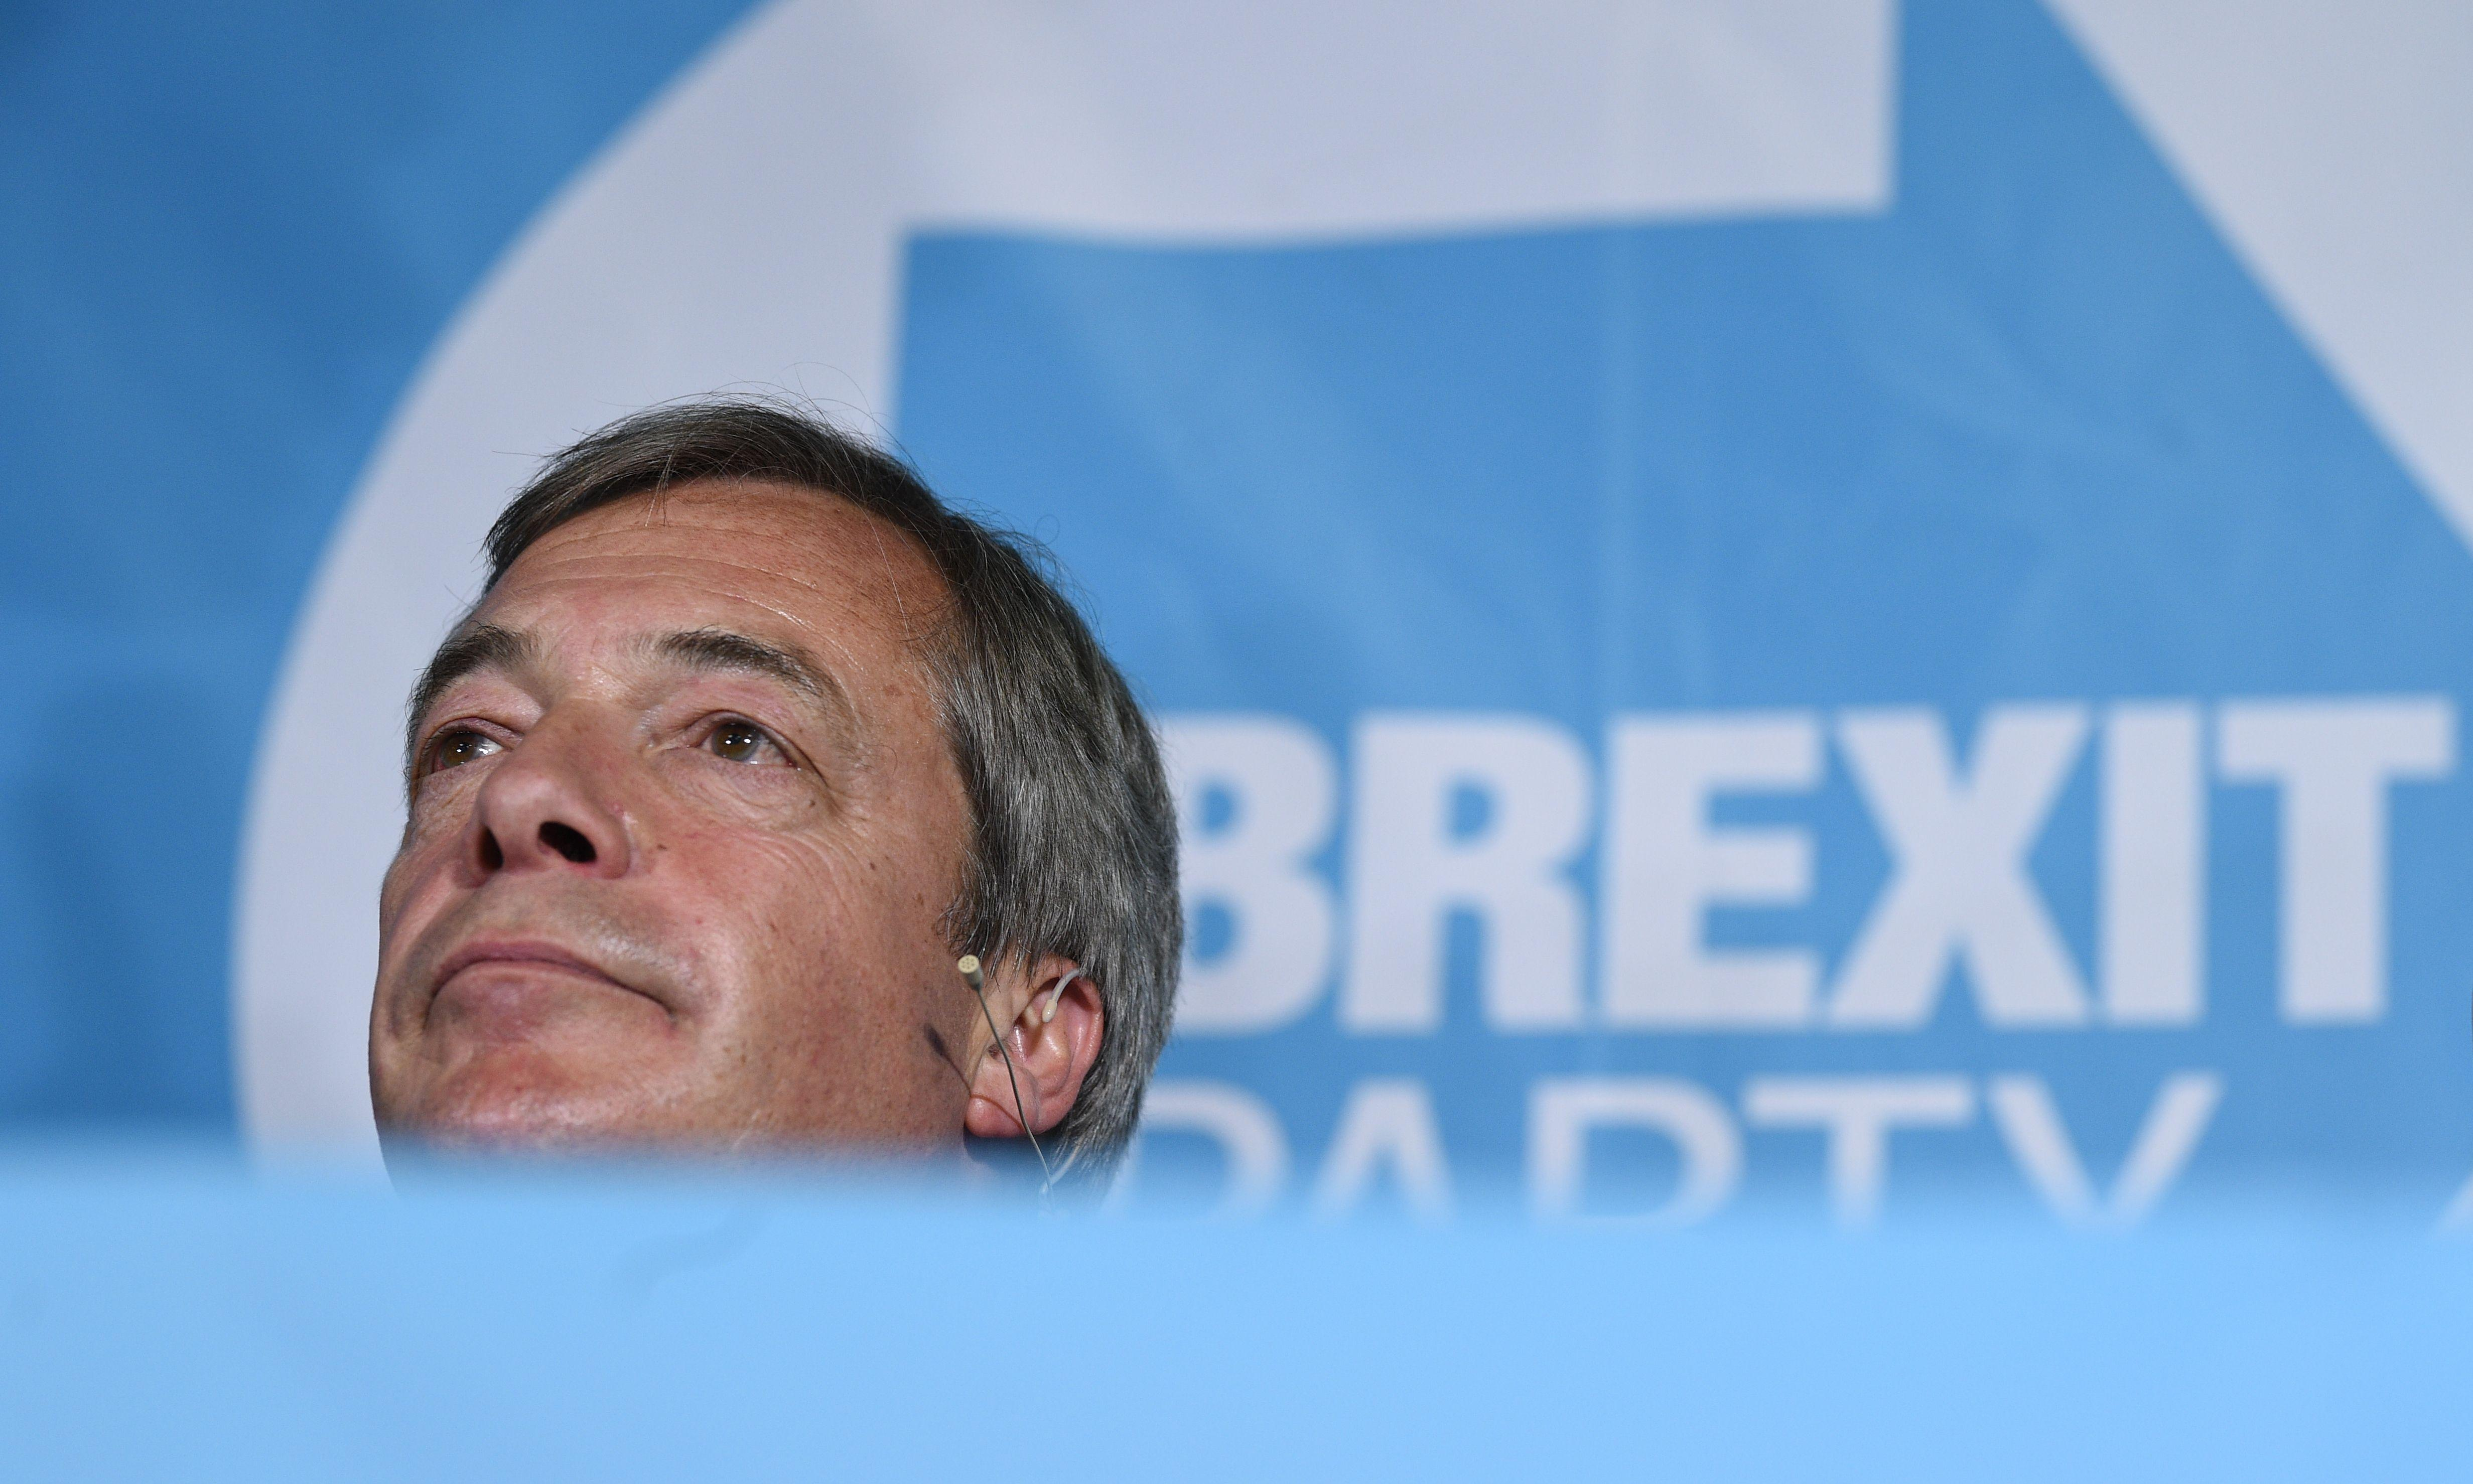 Brexit party sets sights on Labour's Welsh strongholds